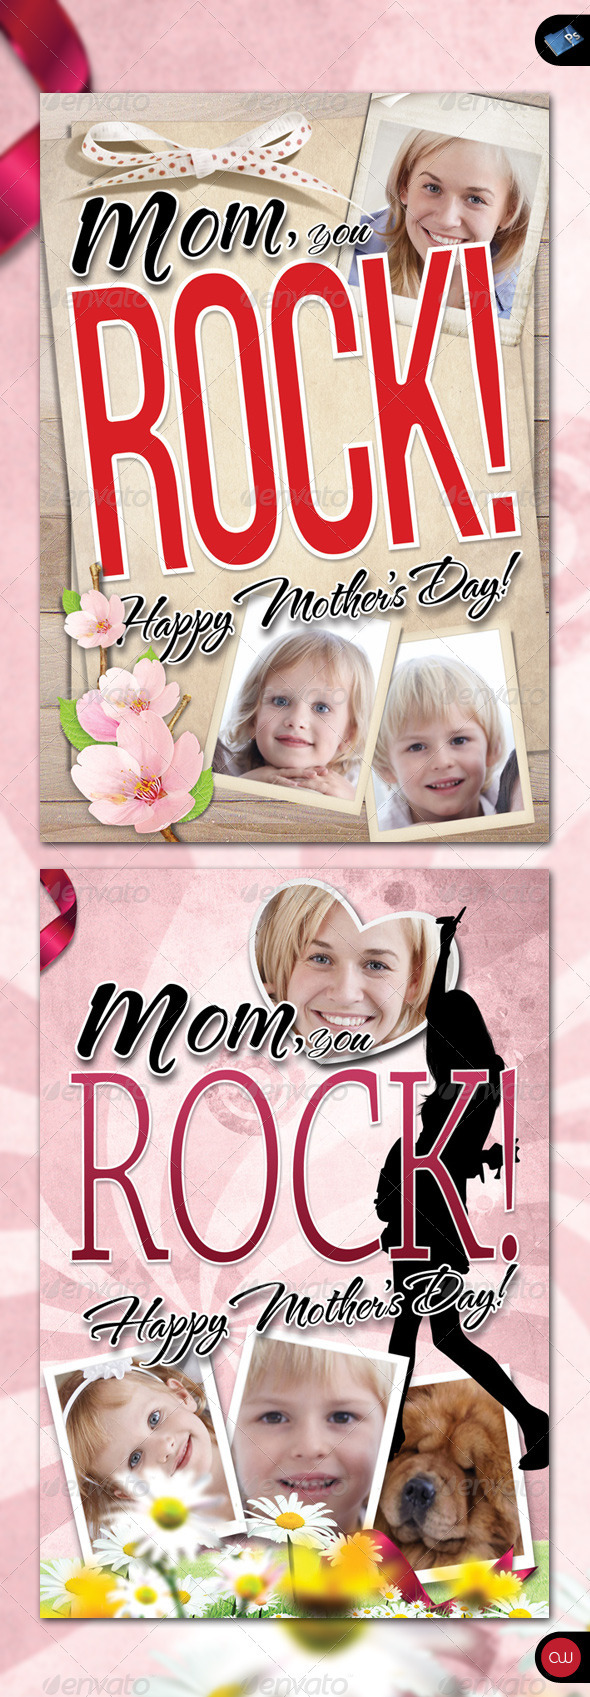 GraphicRiver Greeting Card Mom you Rock 235084